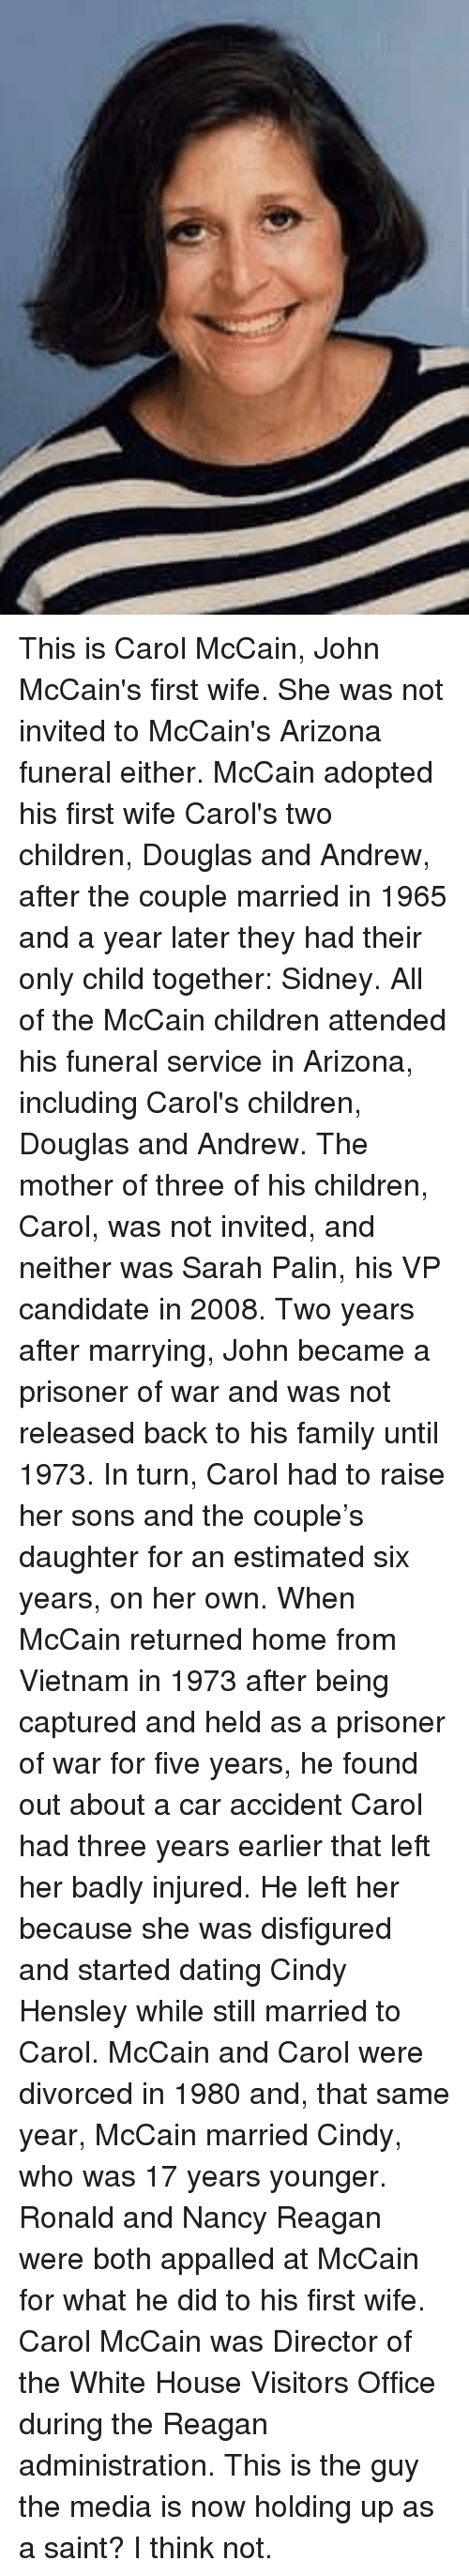 Appalled, Children, and Dating: This is Carol McCain, John McCain's first wife. She was not invited to McCain's Arizona funeral either. McCain adopted his first wife Carol's two children, Douglas and Andrew, after the couple married in 1965 and a year later they had their only child together: Sidney. All of the McCain children attended his funeral service in Arizona, including Carol's children, Douglas and Andrew. The mother of three of his children, Carol, was not invited, and neither was Sarah Palin, his VP candidate in 2008.  Two years after marrying, John became a prisoner of war and was not released back to his family until 1973. In turn, Carol had to raise her sons and the couple's daughter for an estimated six years, on her own. When McCain returned home from Vietnam in 1973 after being captured and held as a prisoner of war for five years, he found out about a car accident Carol had three years earlier that left her badly injured.  He left her because she was disfigured and started dating Cindy Hensley while still married to Carol. McCain and Carol were divorced in 1980 and, that same year, McCain married Cindy, who was 17 years younger. Ronald and Nancy Reagan were both appalled at McCain for what he did to his first wife. Carol McCain was Director of the White House Visitors Office during the Reagan administration.  This is the guy the media is now holding up as a saint? I think not.